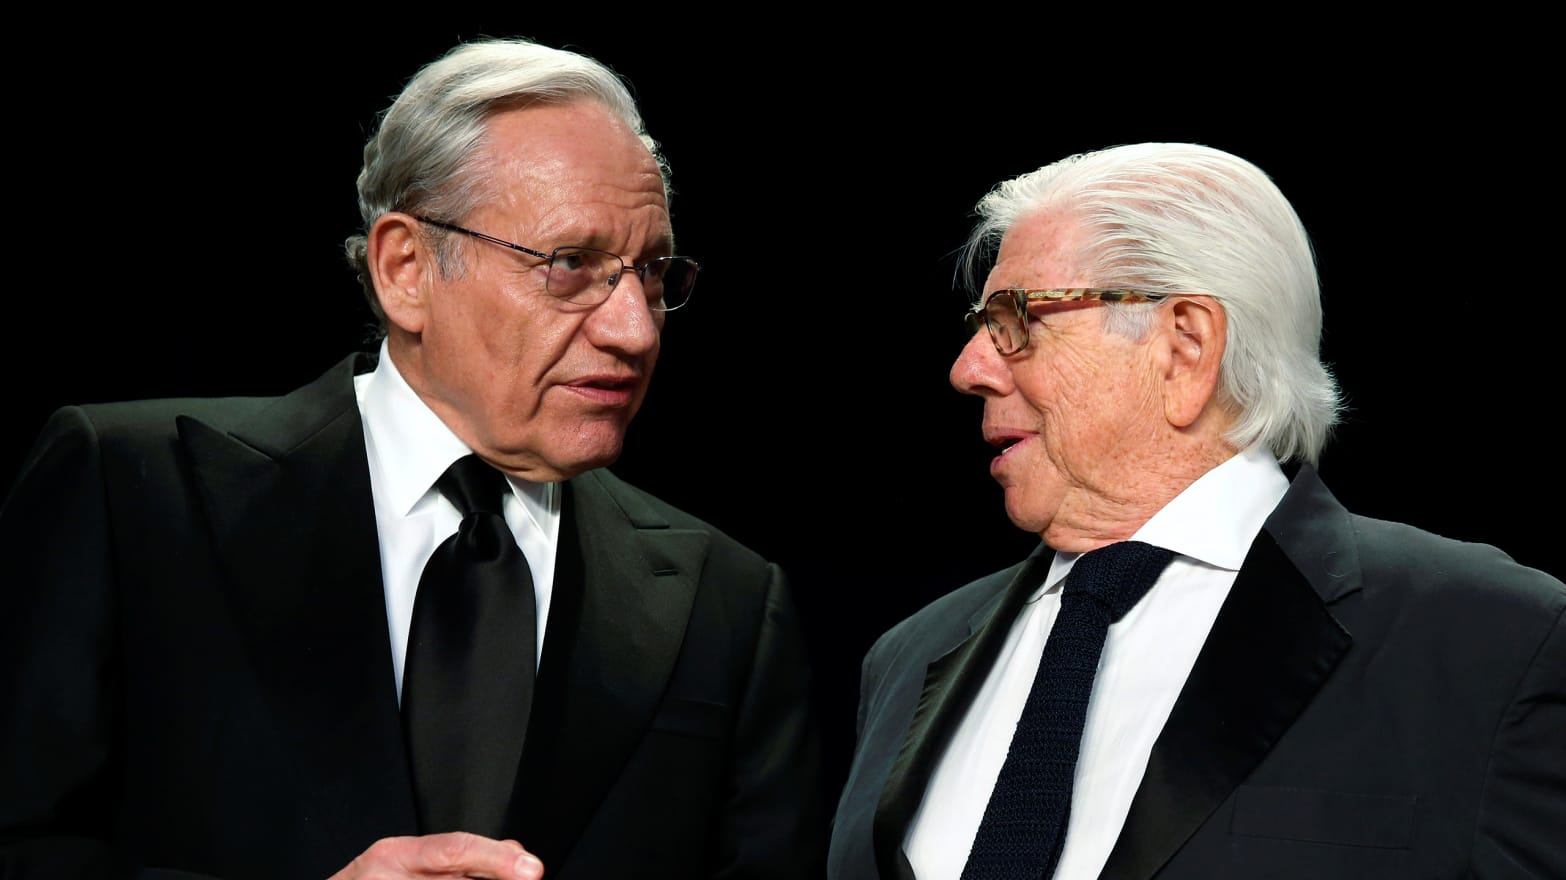 Image result for woodward and bernstein images